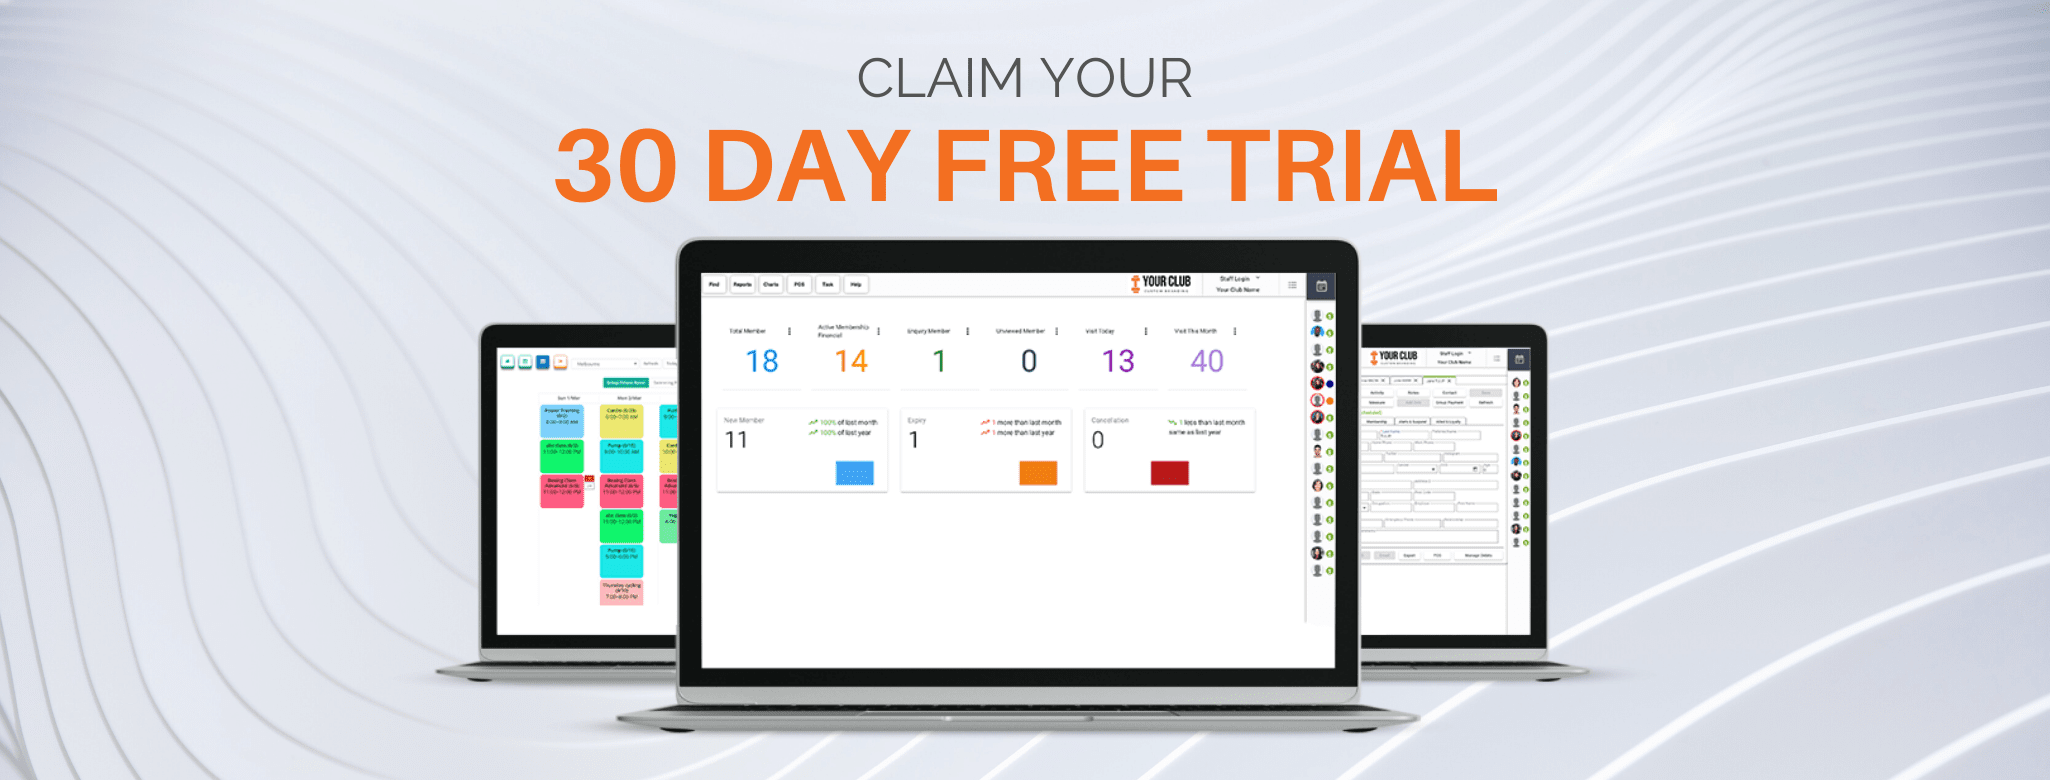 Gym Software Free Trial Banner